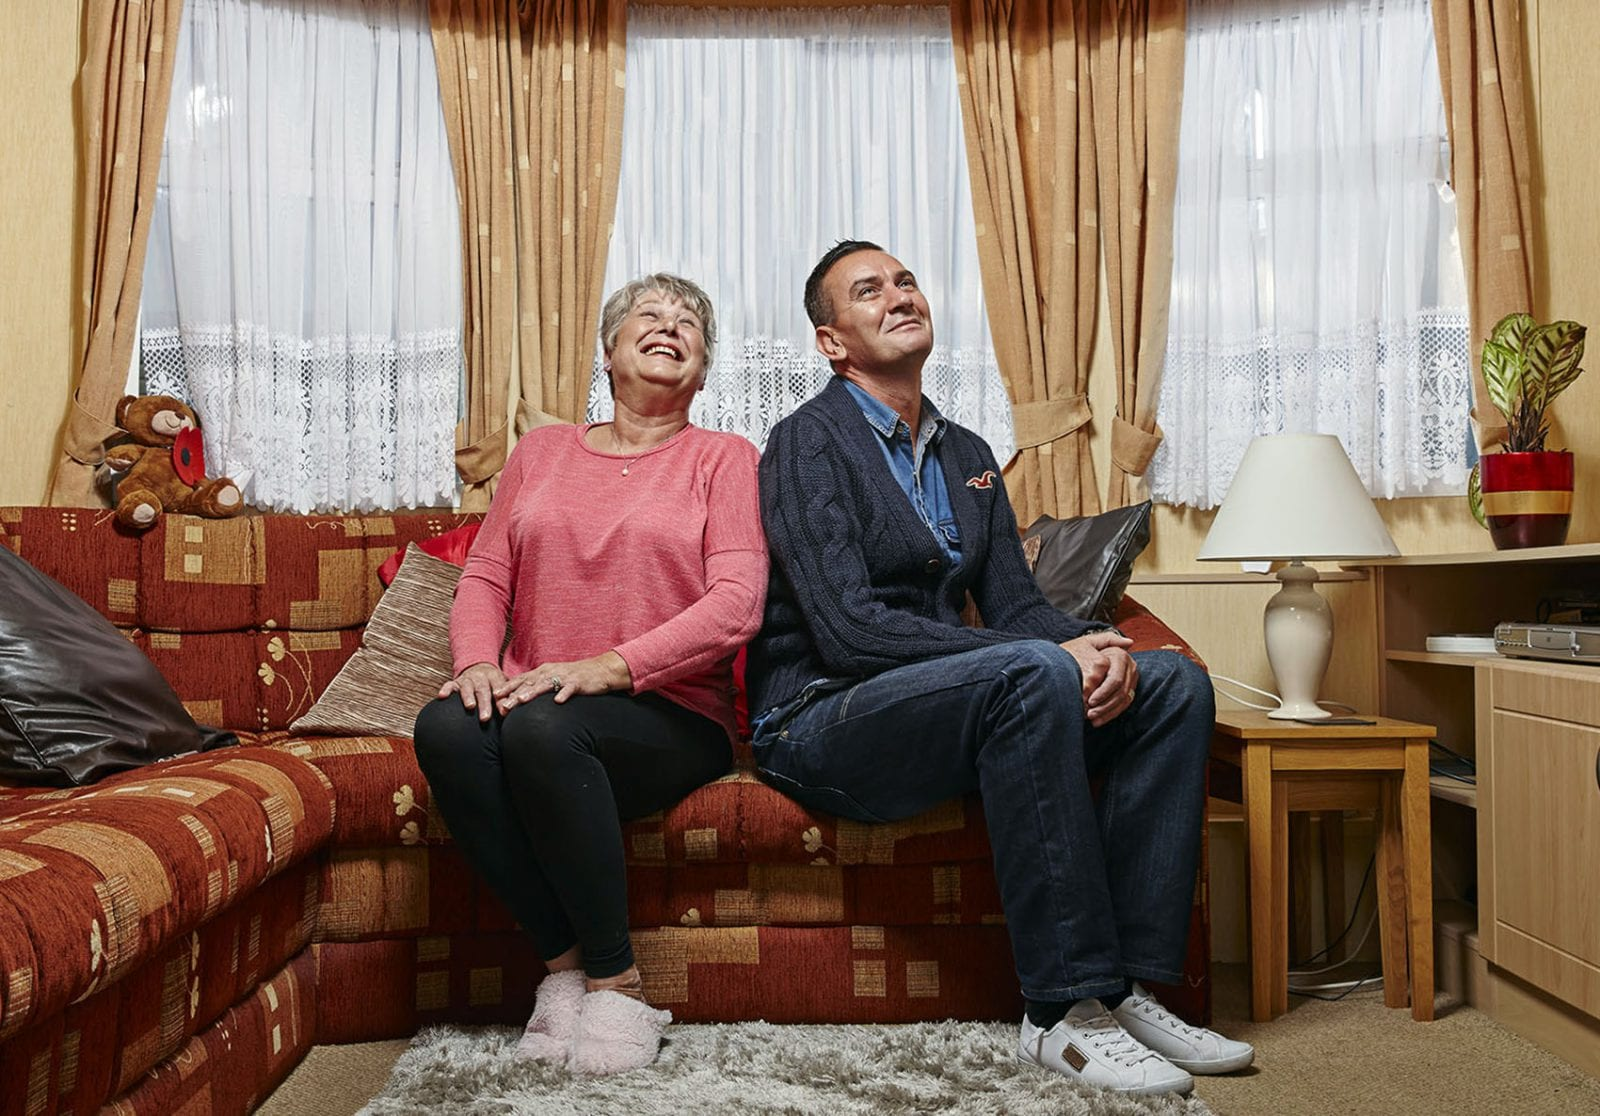 Jenny and Lee, some of the stars of Gogglebox